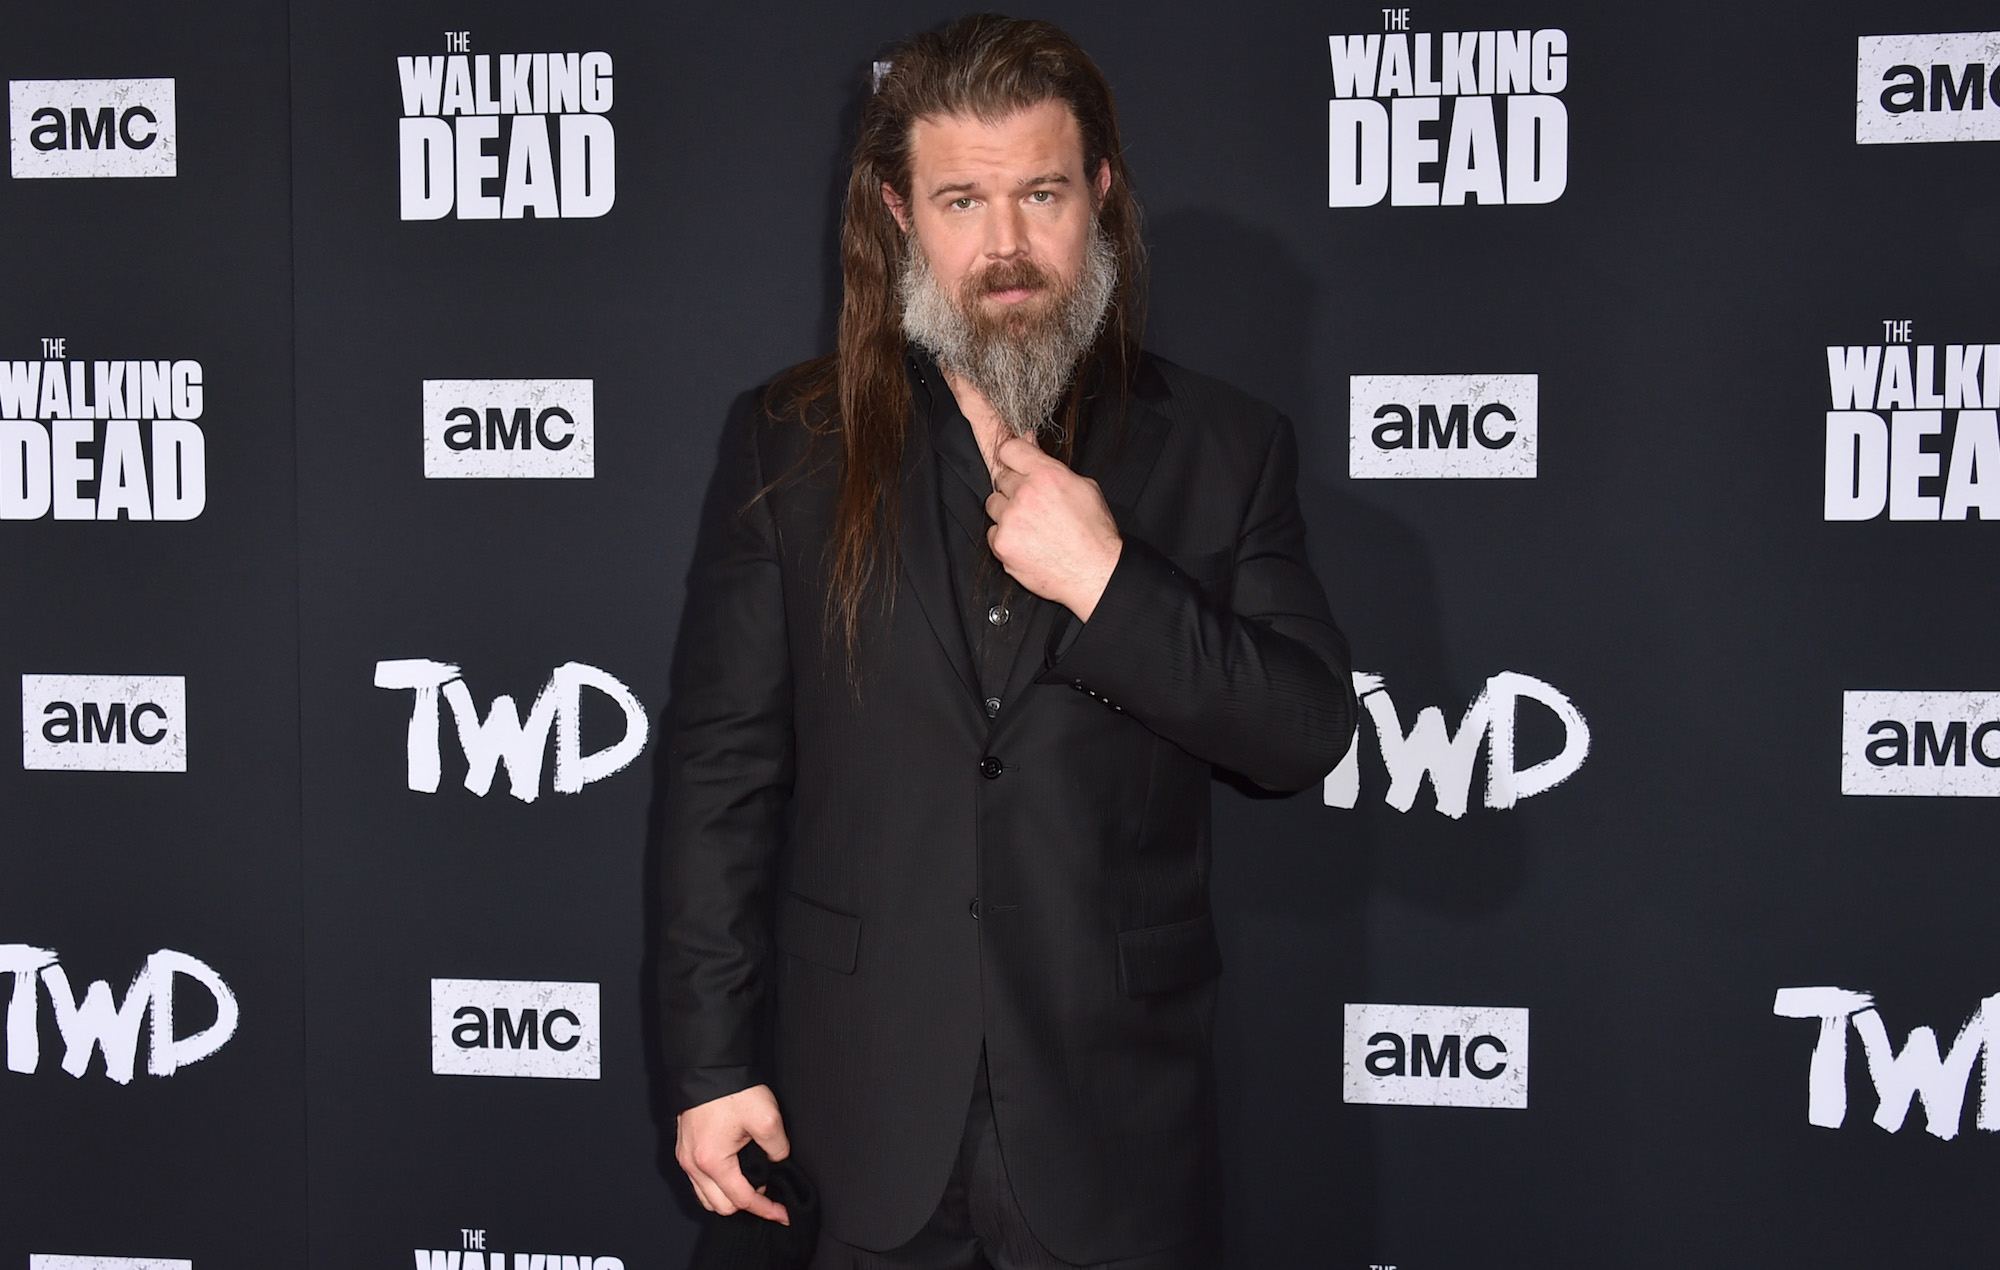 'The Walking Dead' star Ryan Hurst was hospitalised during filming